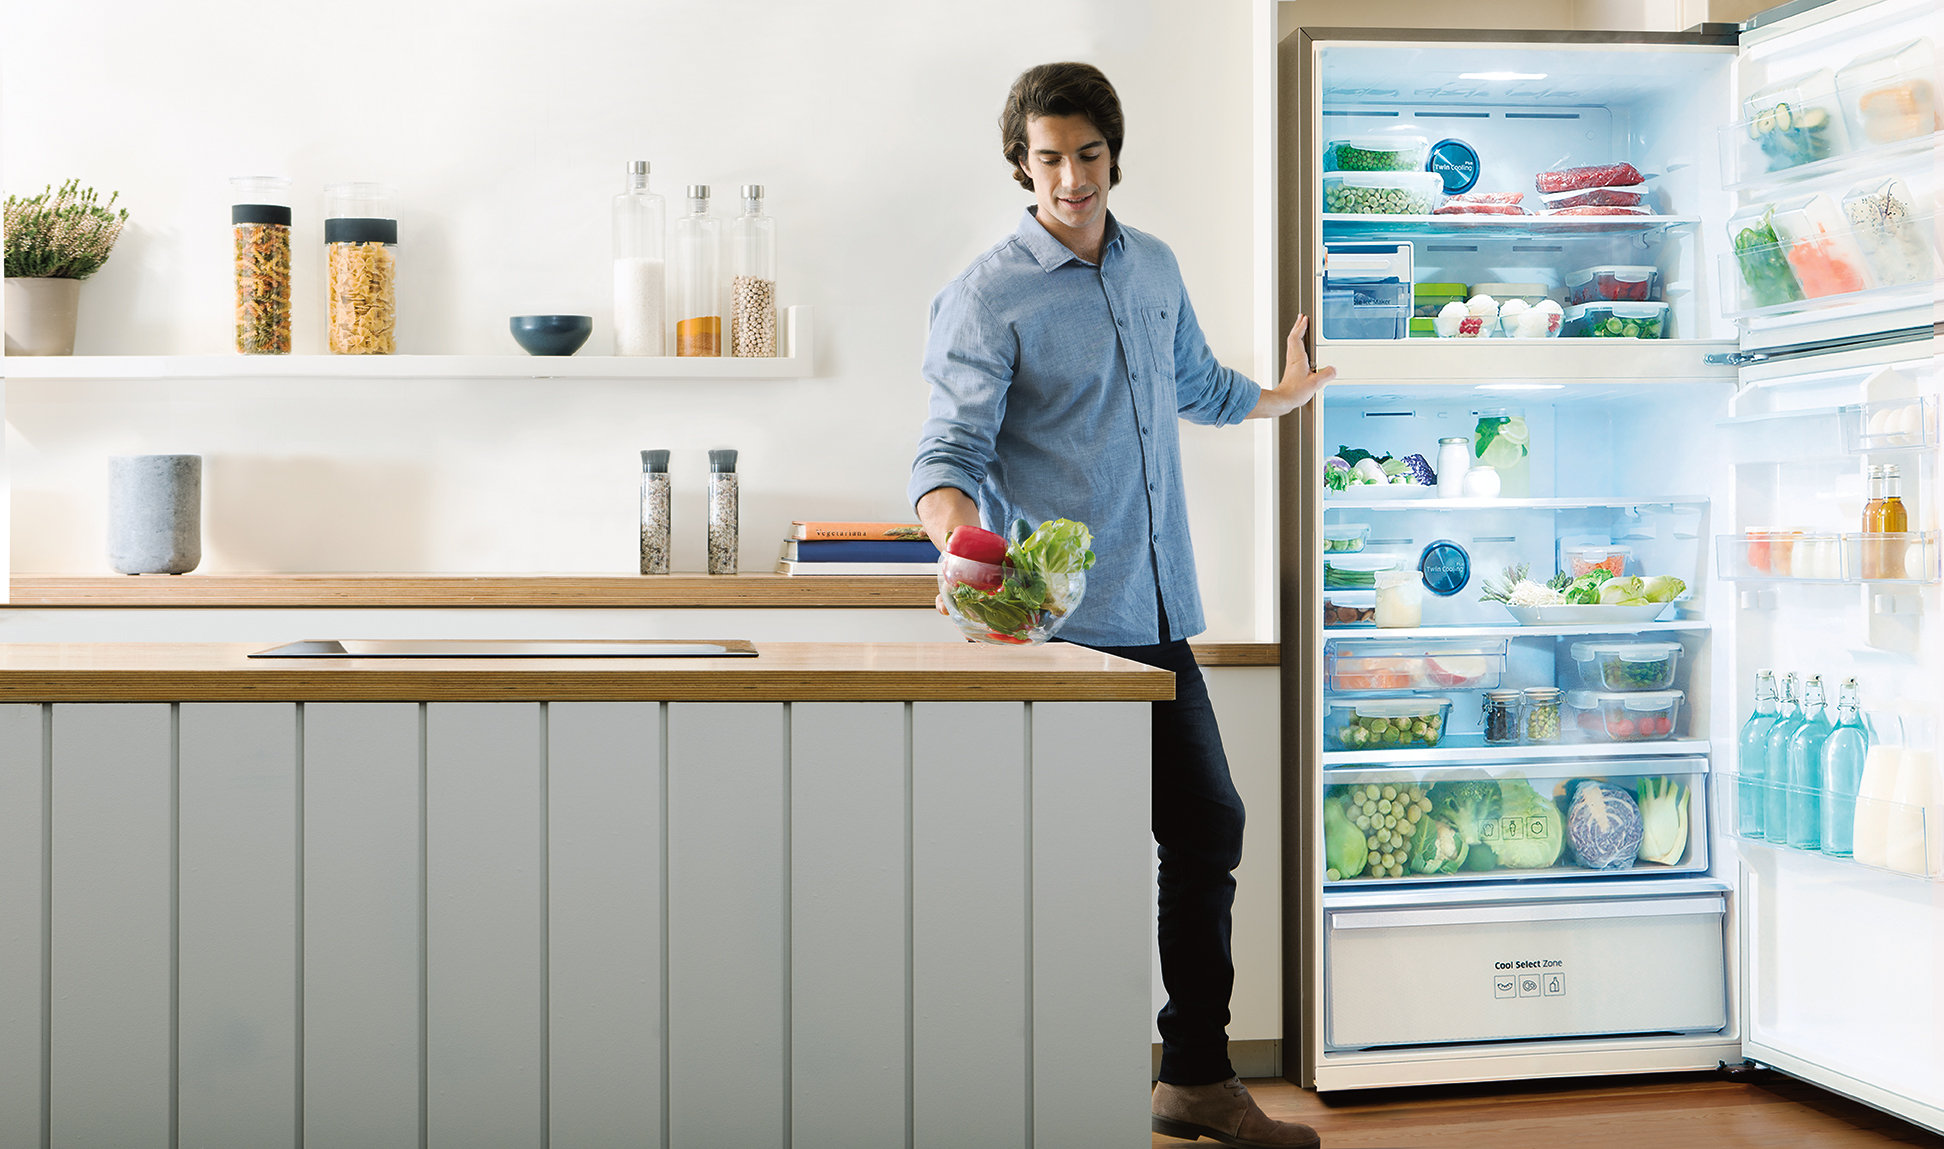 Samsung zeros in on food wastage and offers an innovative solution to reduce it